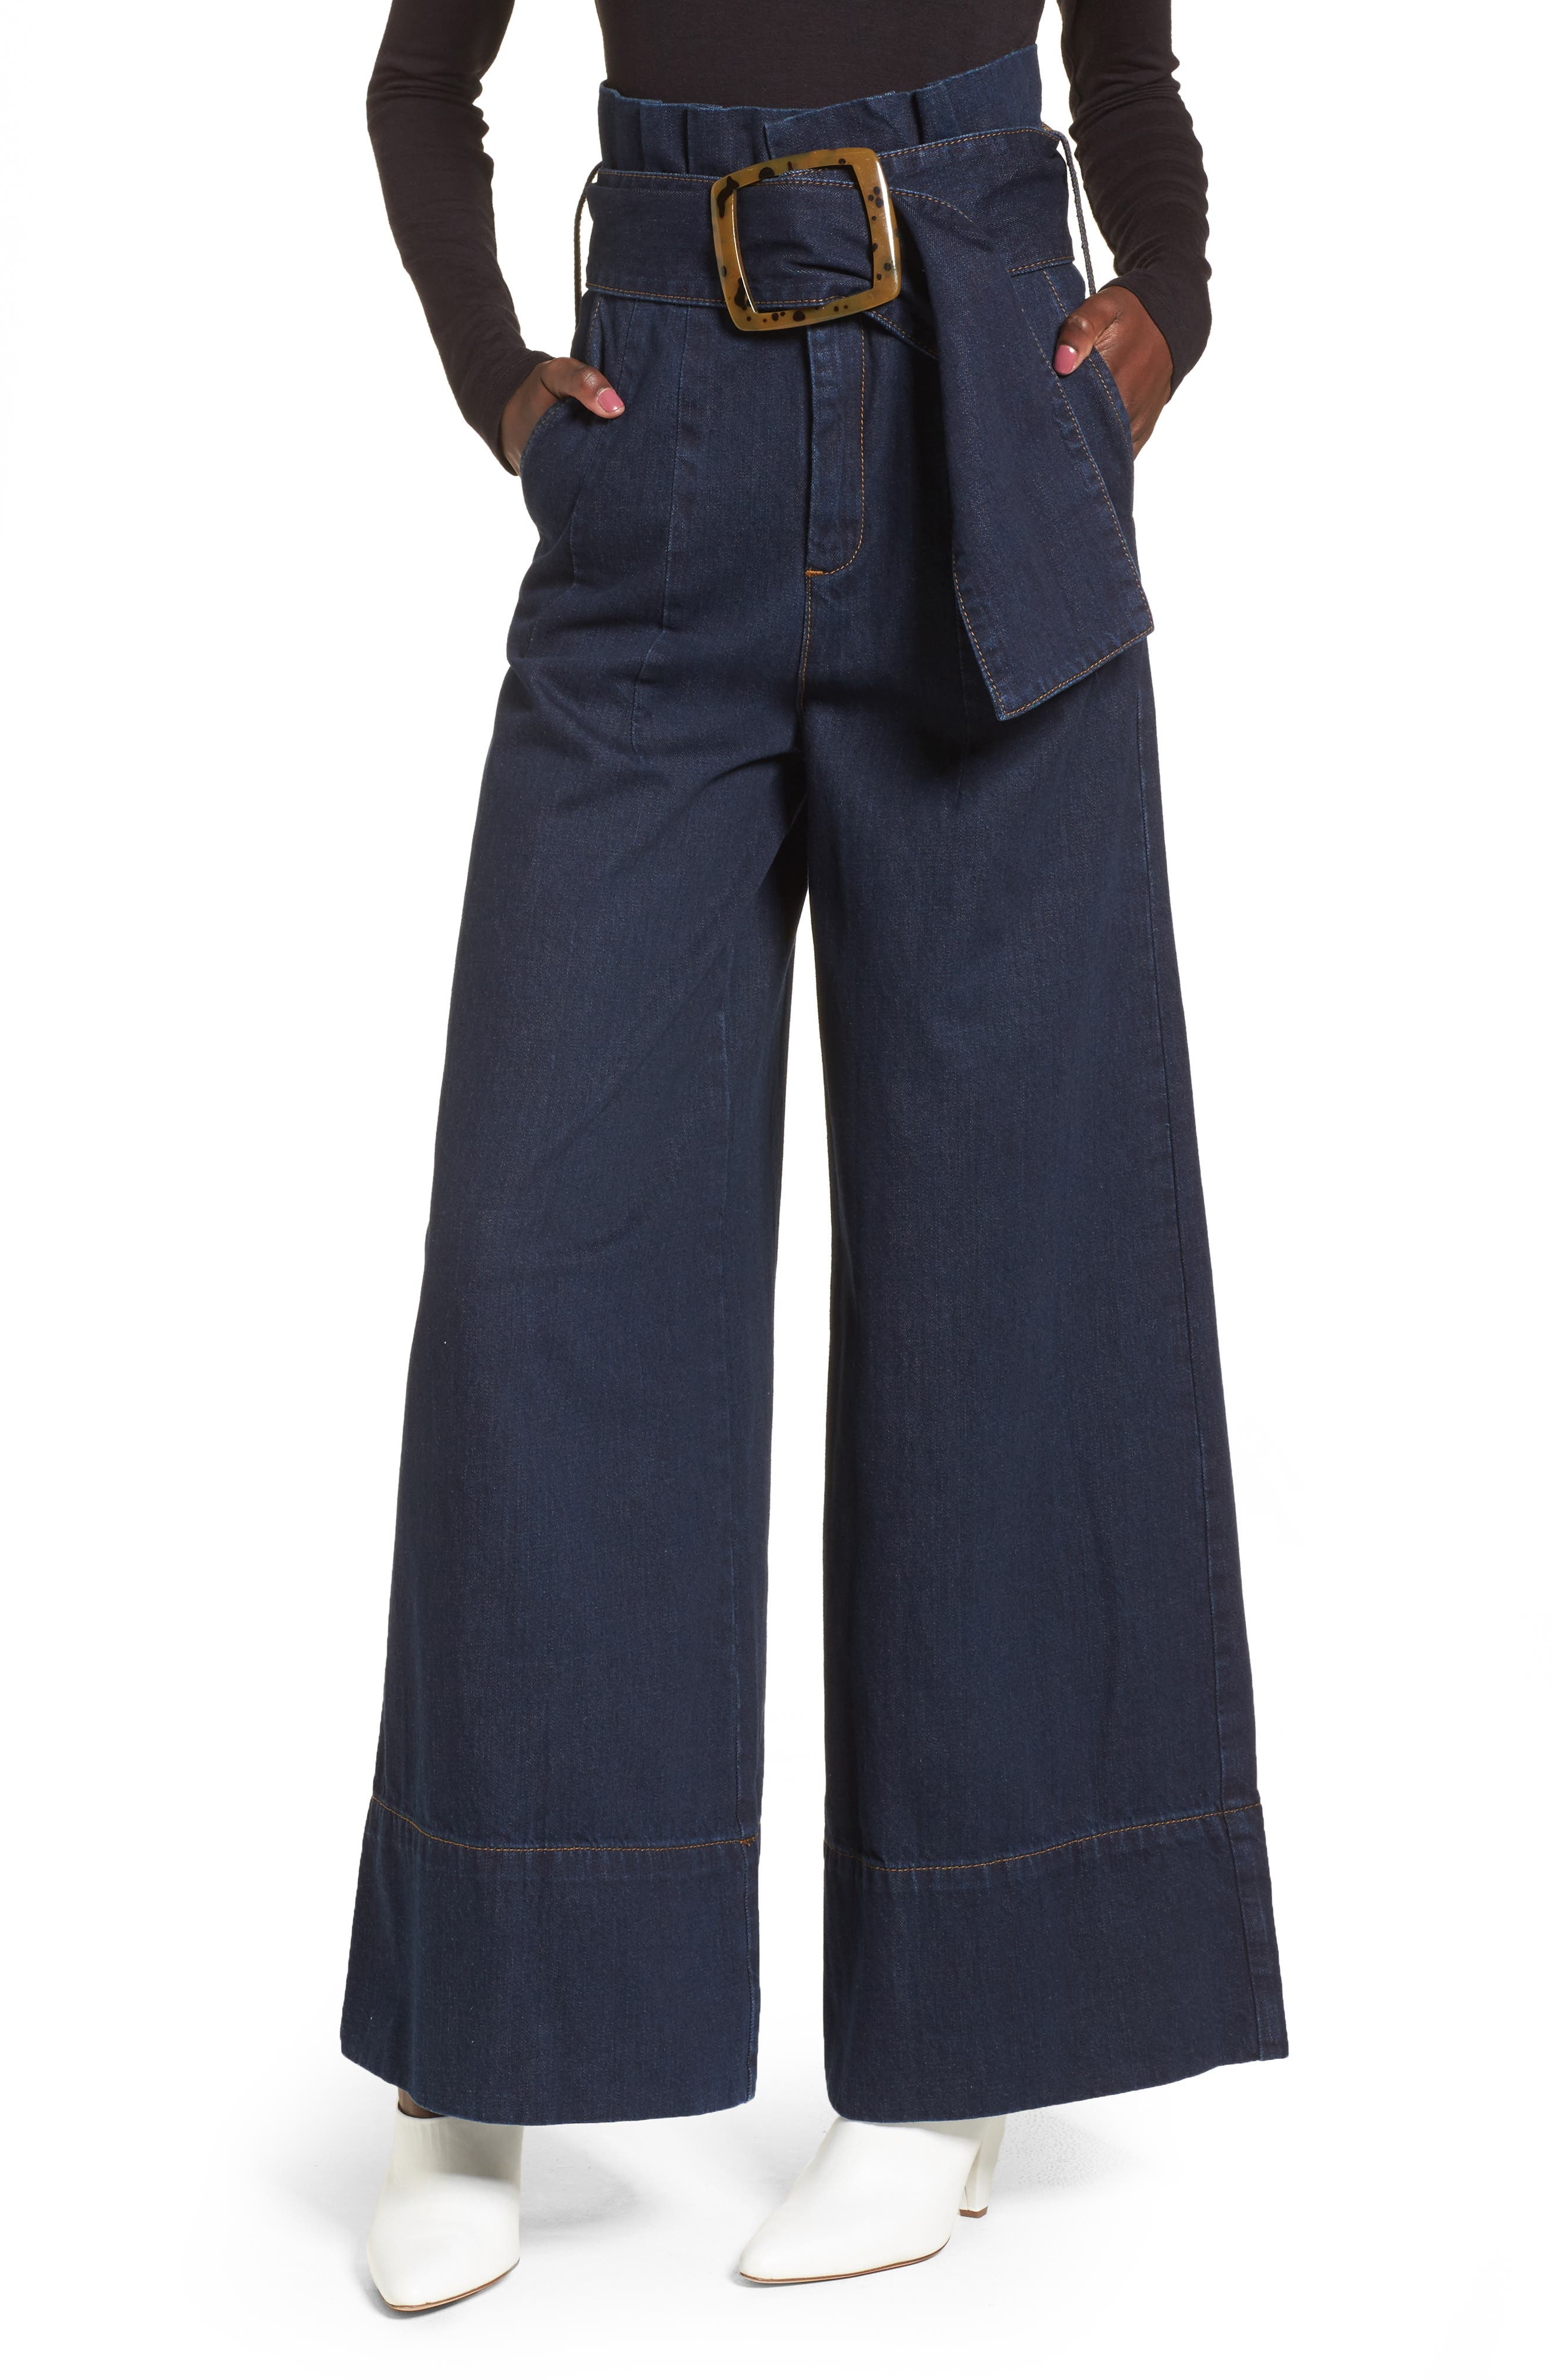 Topshop Boutique Belted Paperbag Flared Jeans